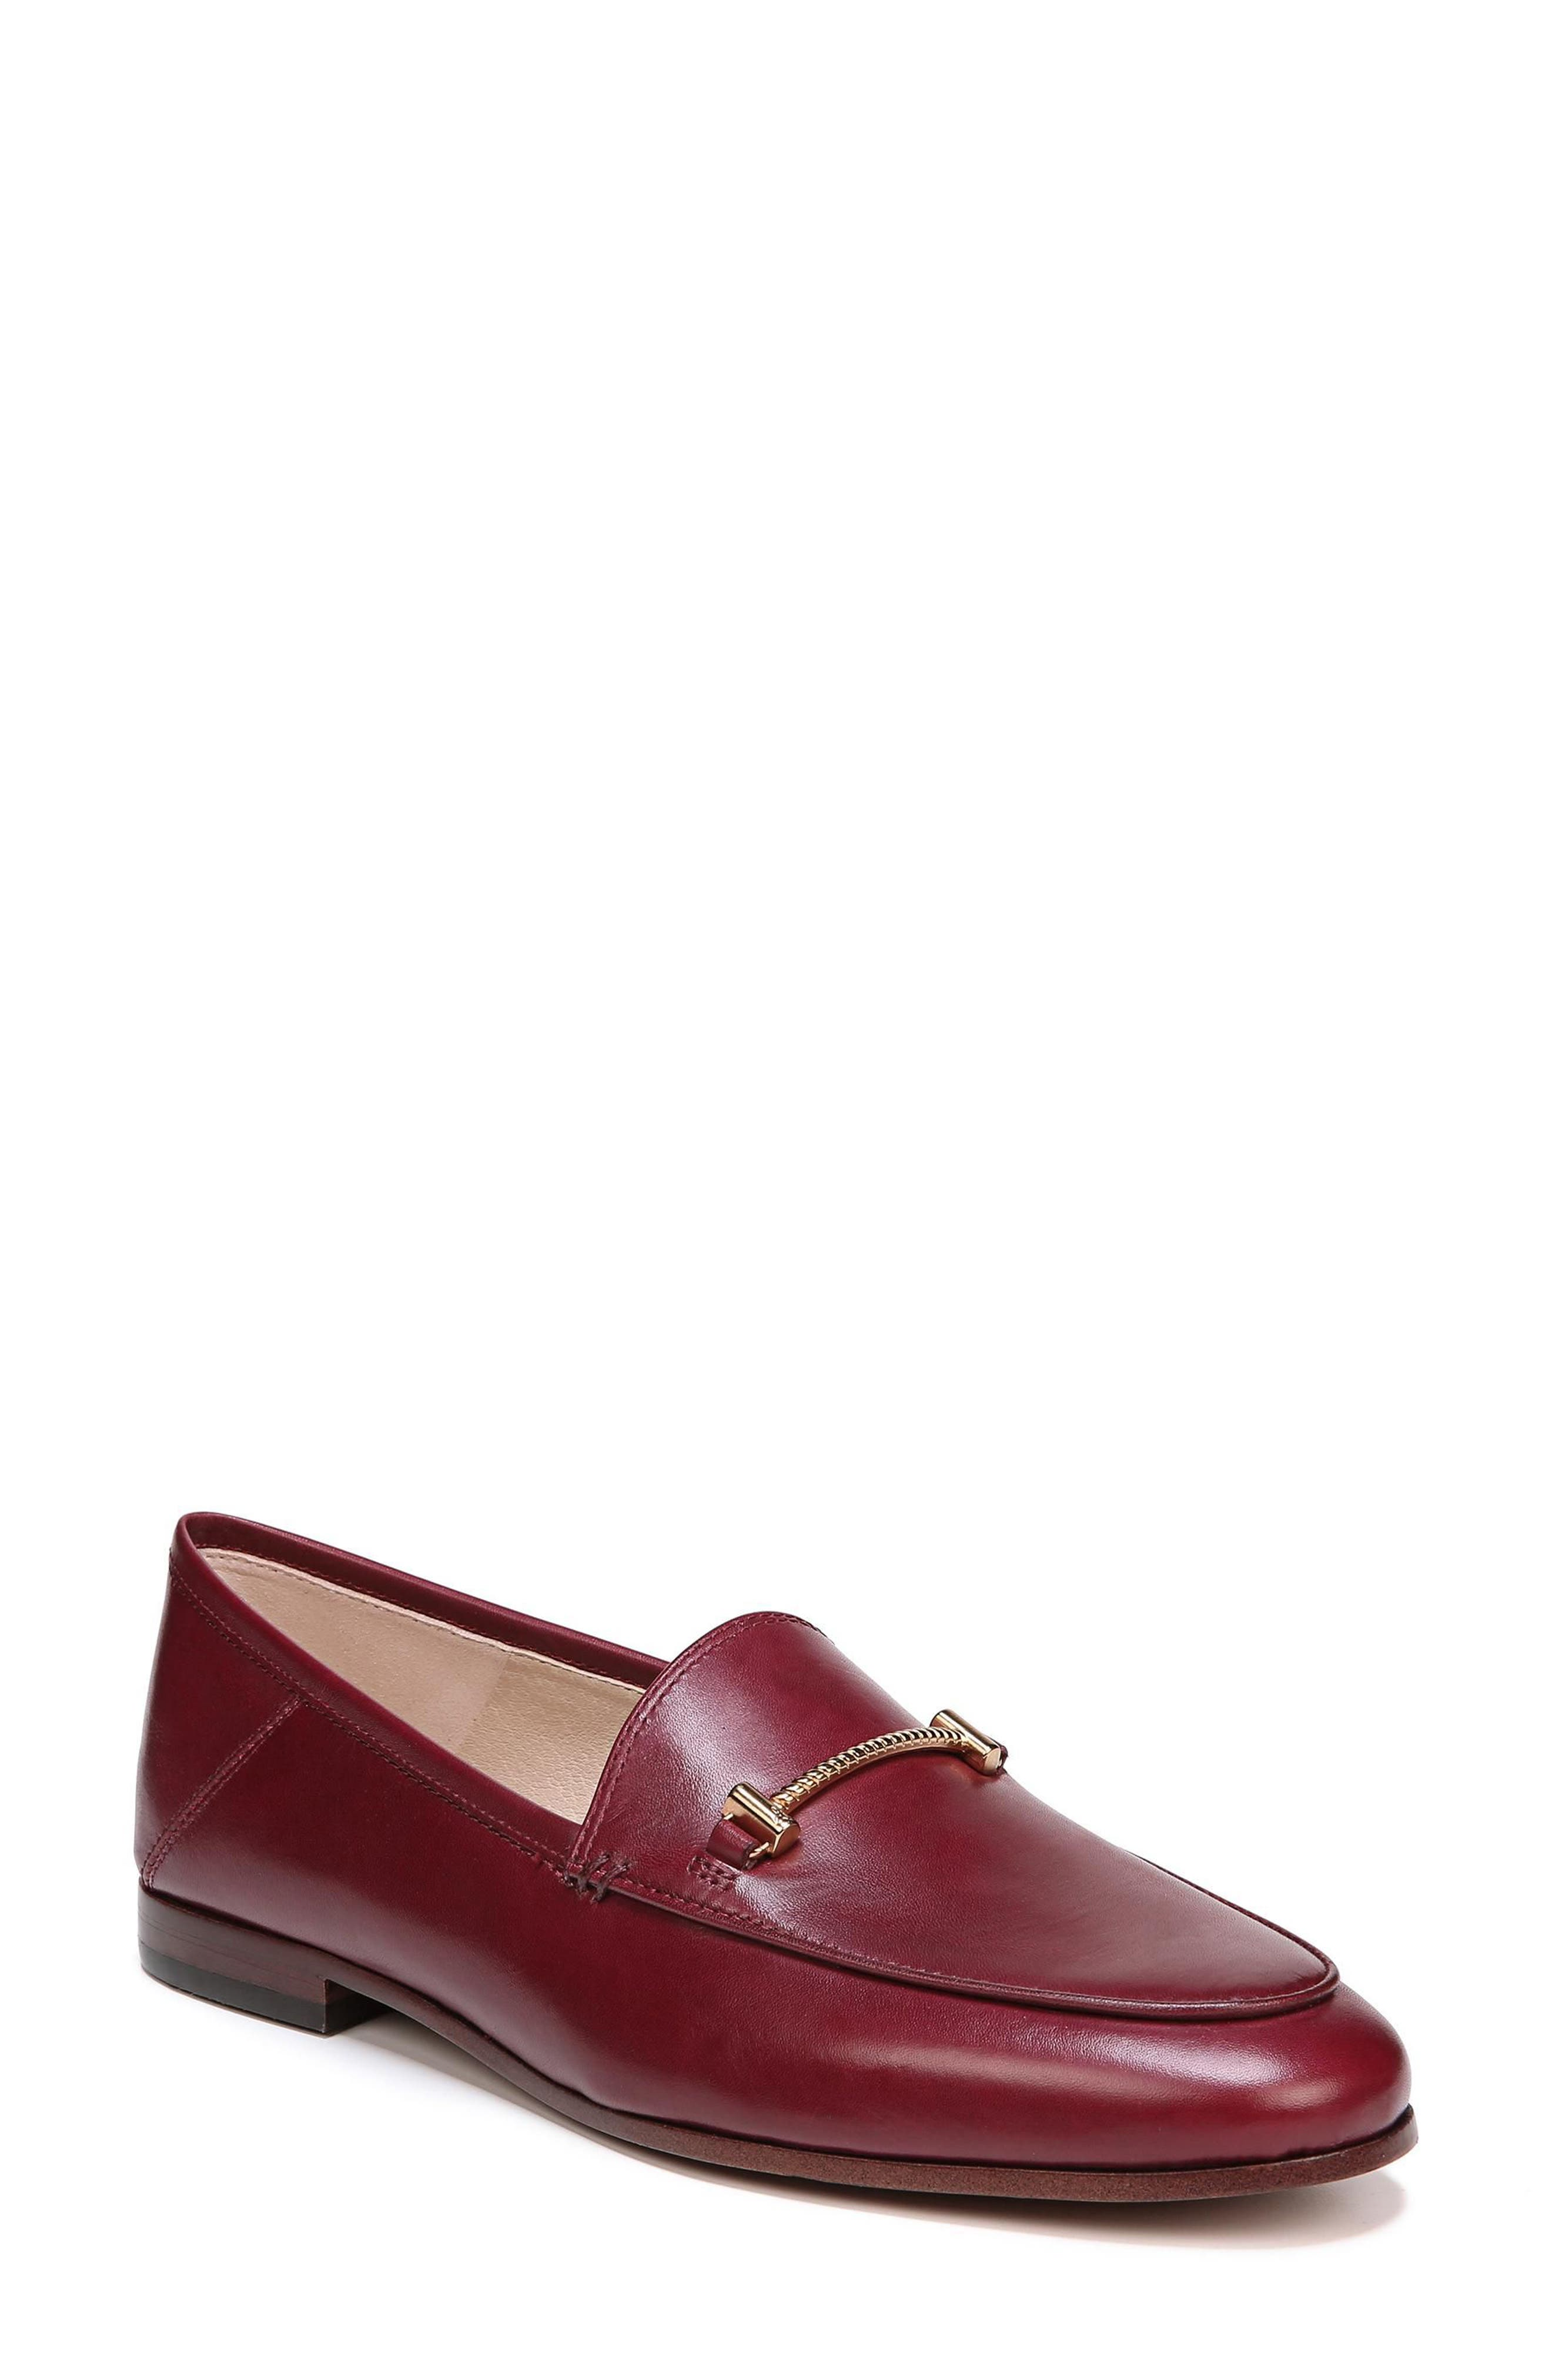 Lior Loafer,                             Main thumbnail 1, color,                             BEET RED LEATHER